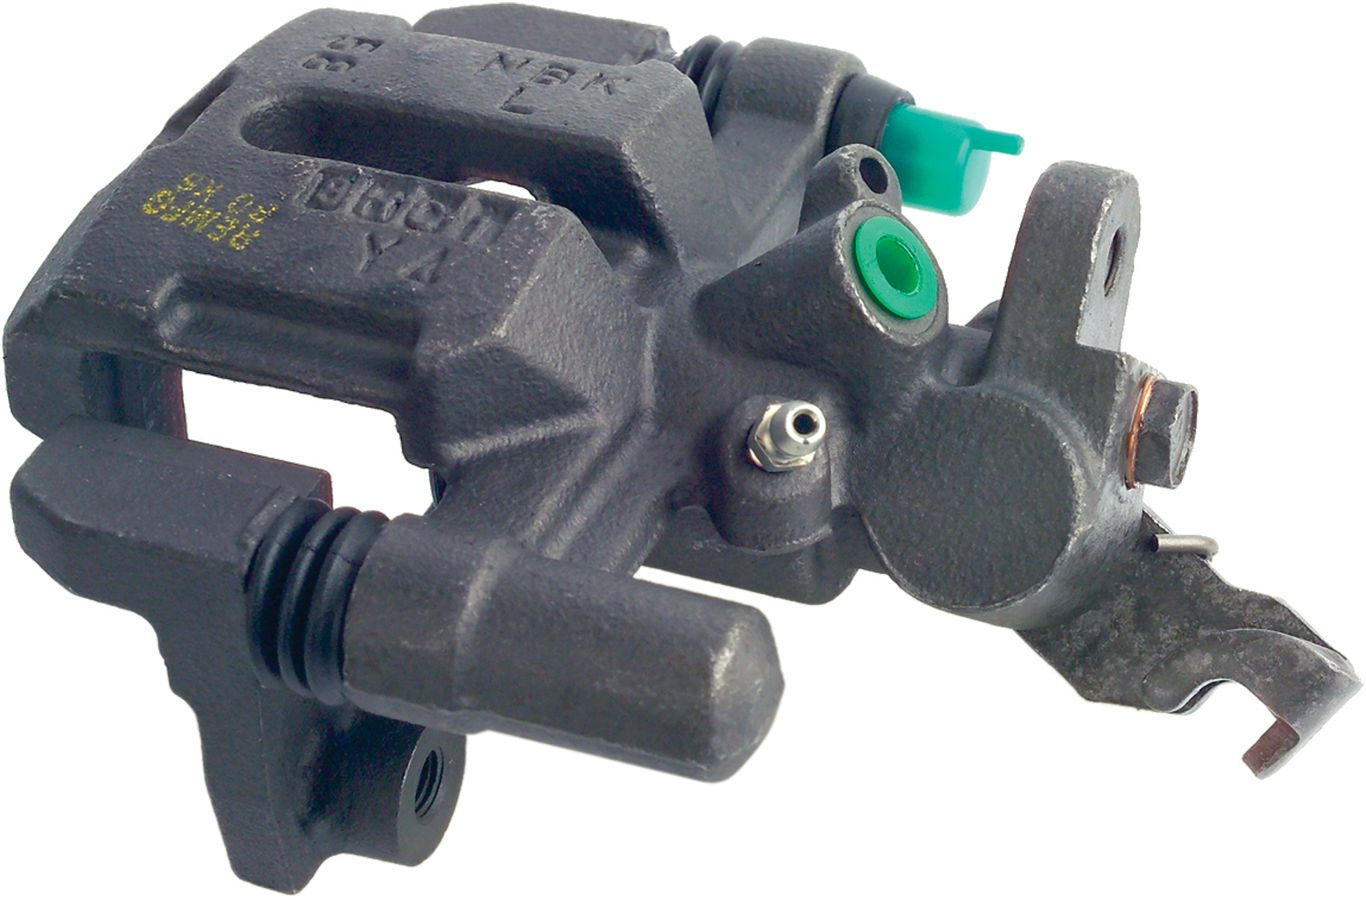 Premier Gear PG-CUF156 Professional Grade New Ignition Coil